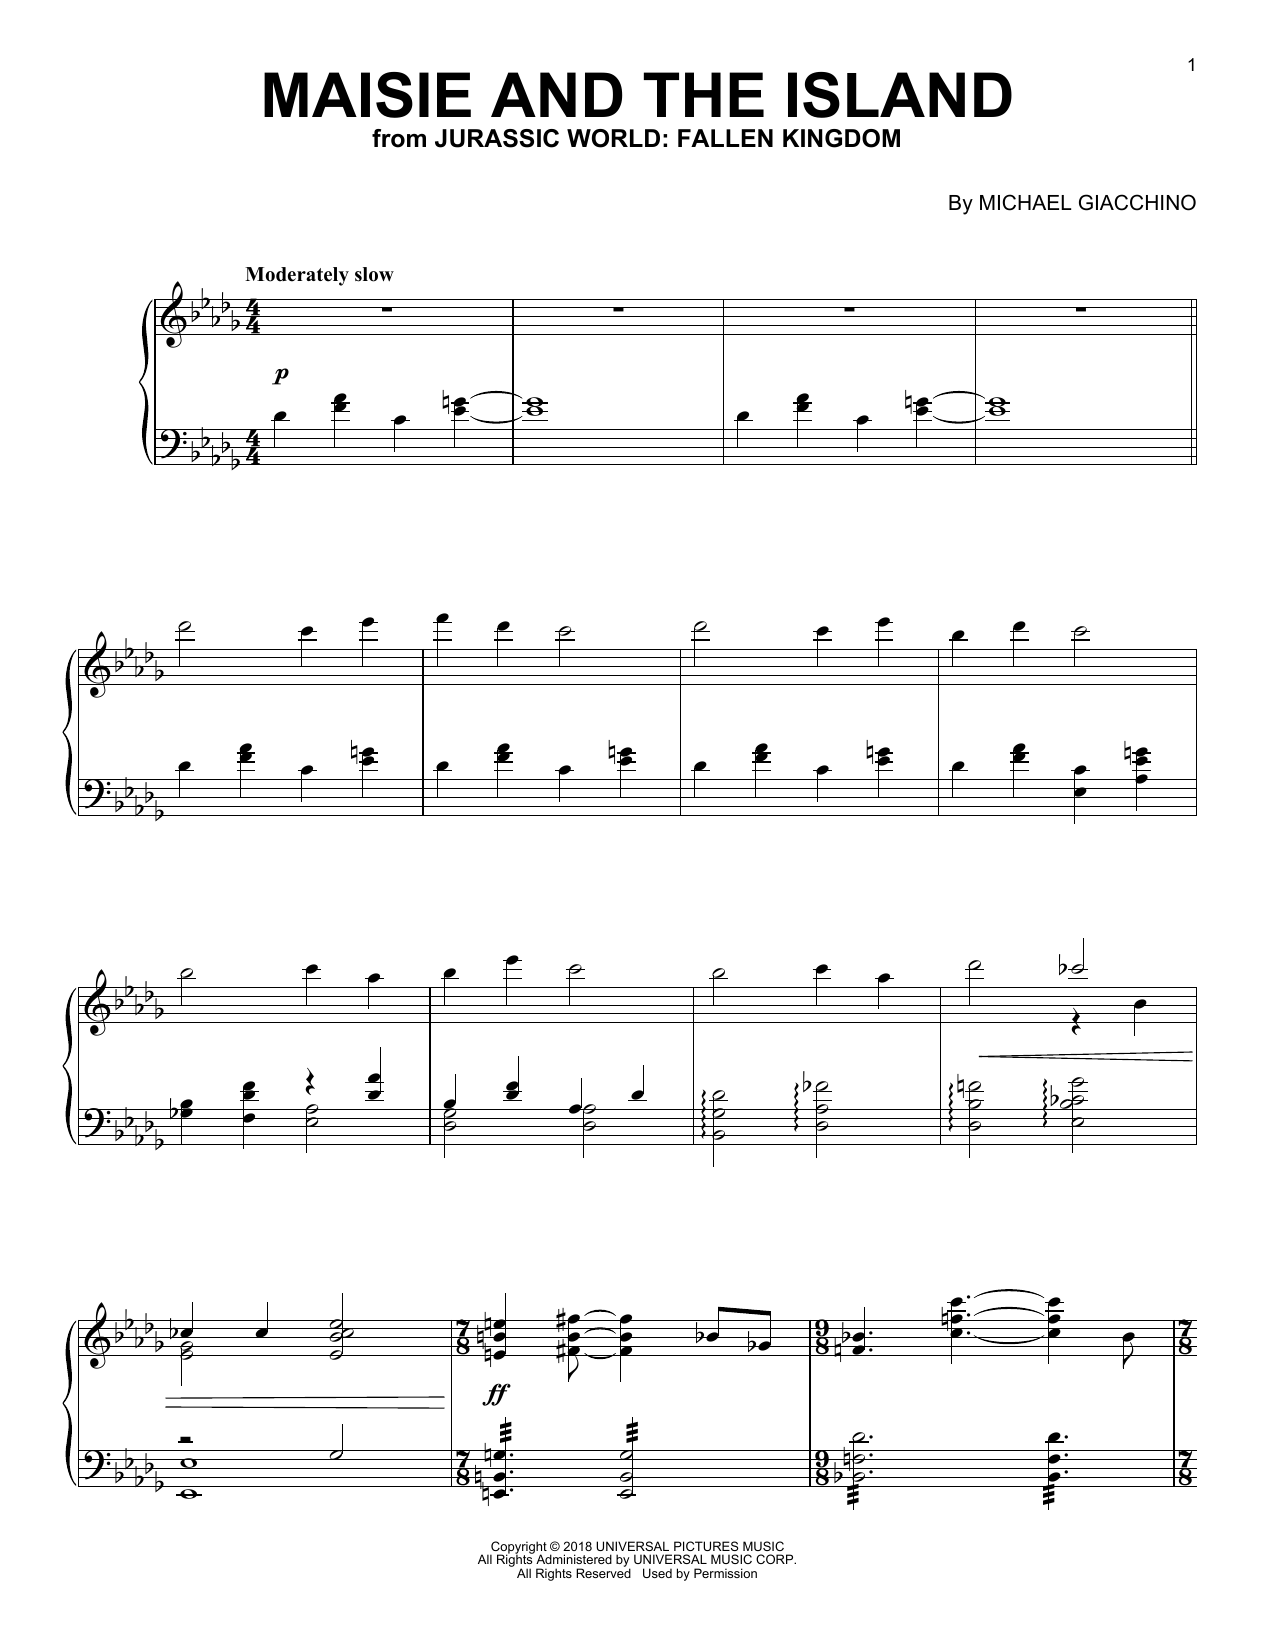 Michael Giacchino Maisie And The Island (from Jurassic World: Fallen Kingdom) sheet music notes and chords. Download Printable PDF.